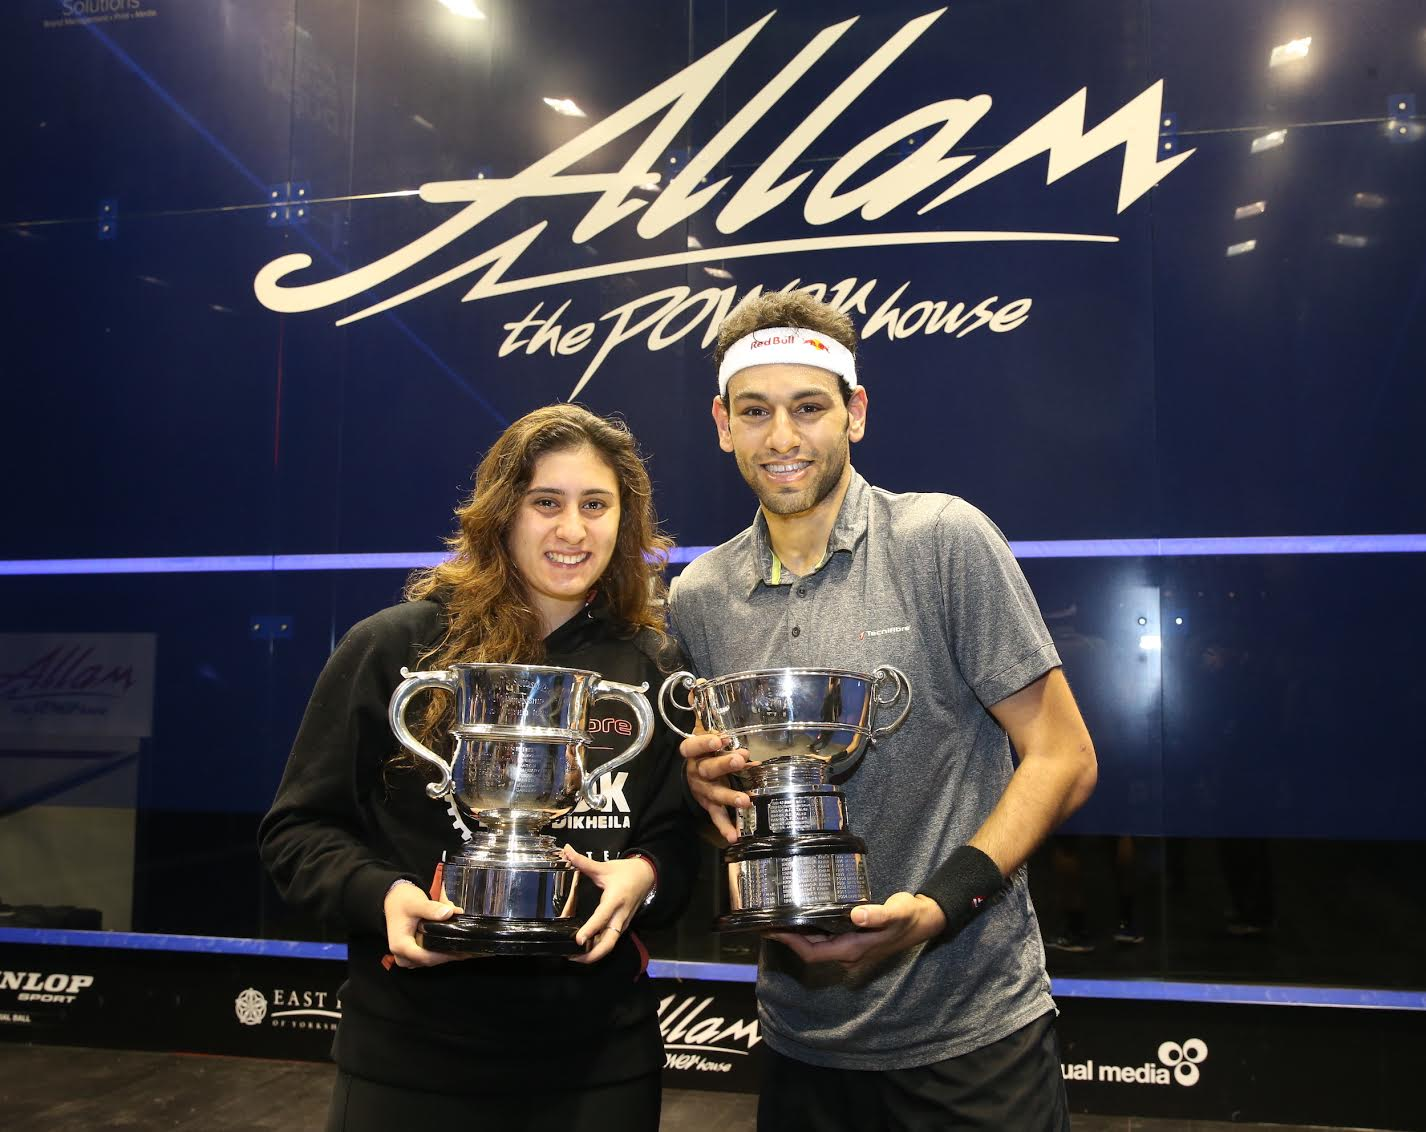 Equal prize money at 2017 British Open